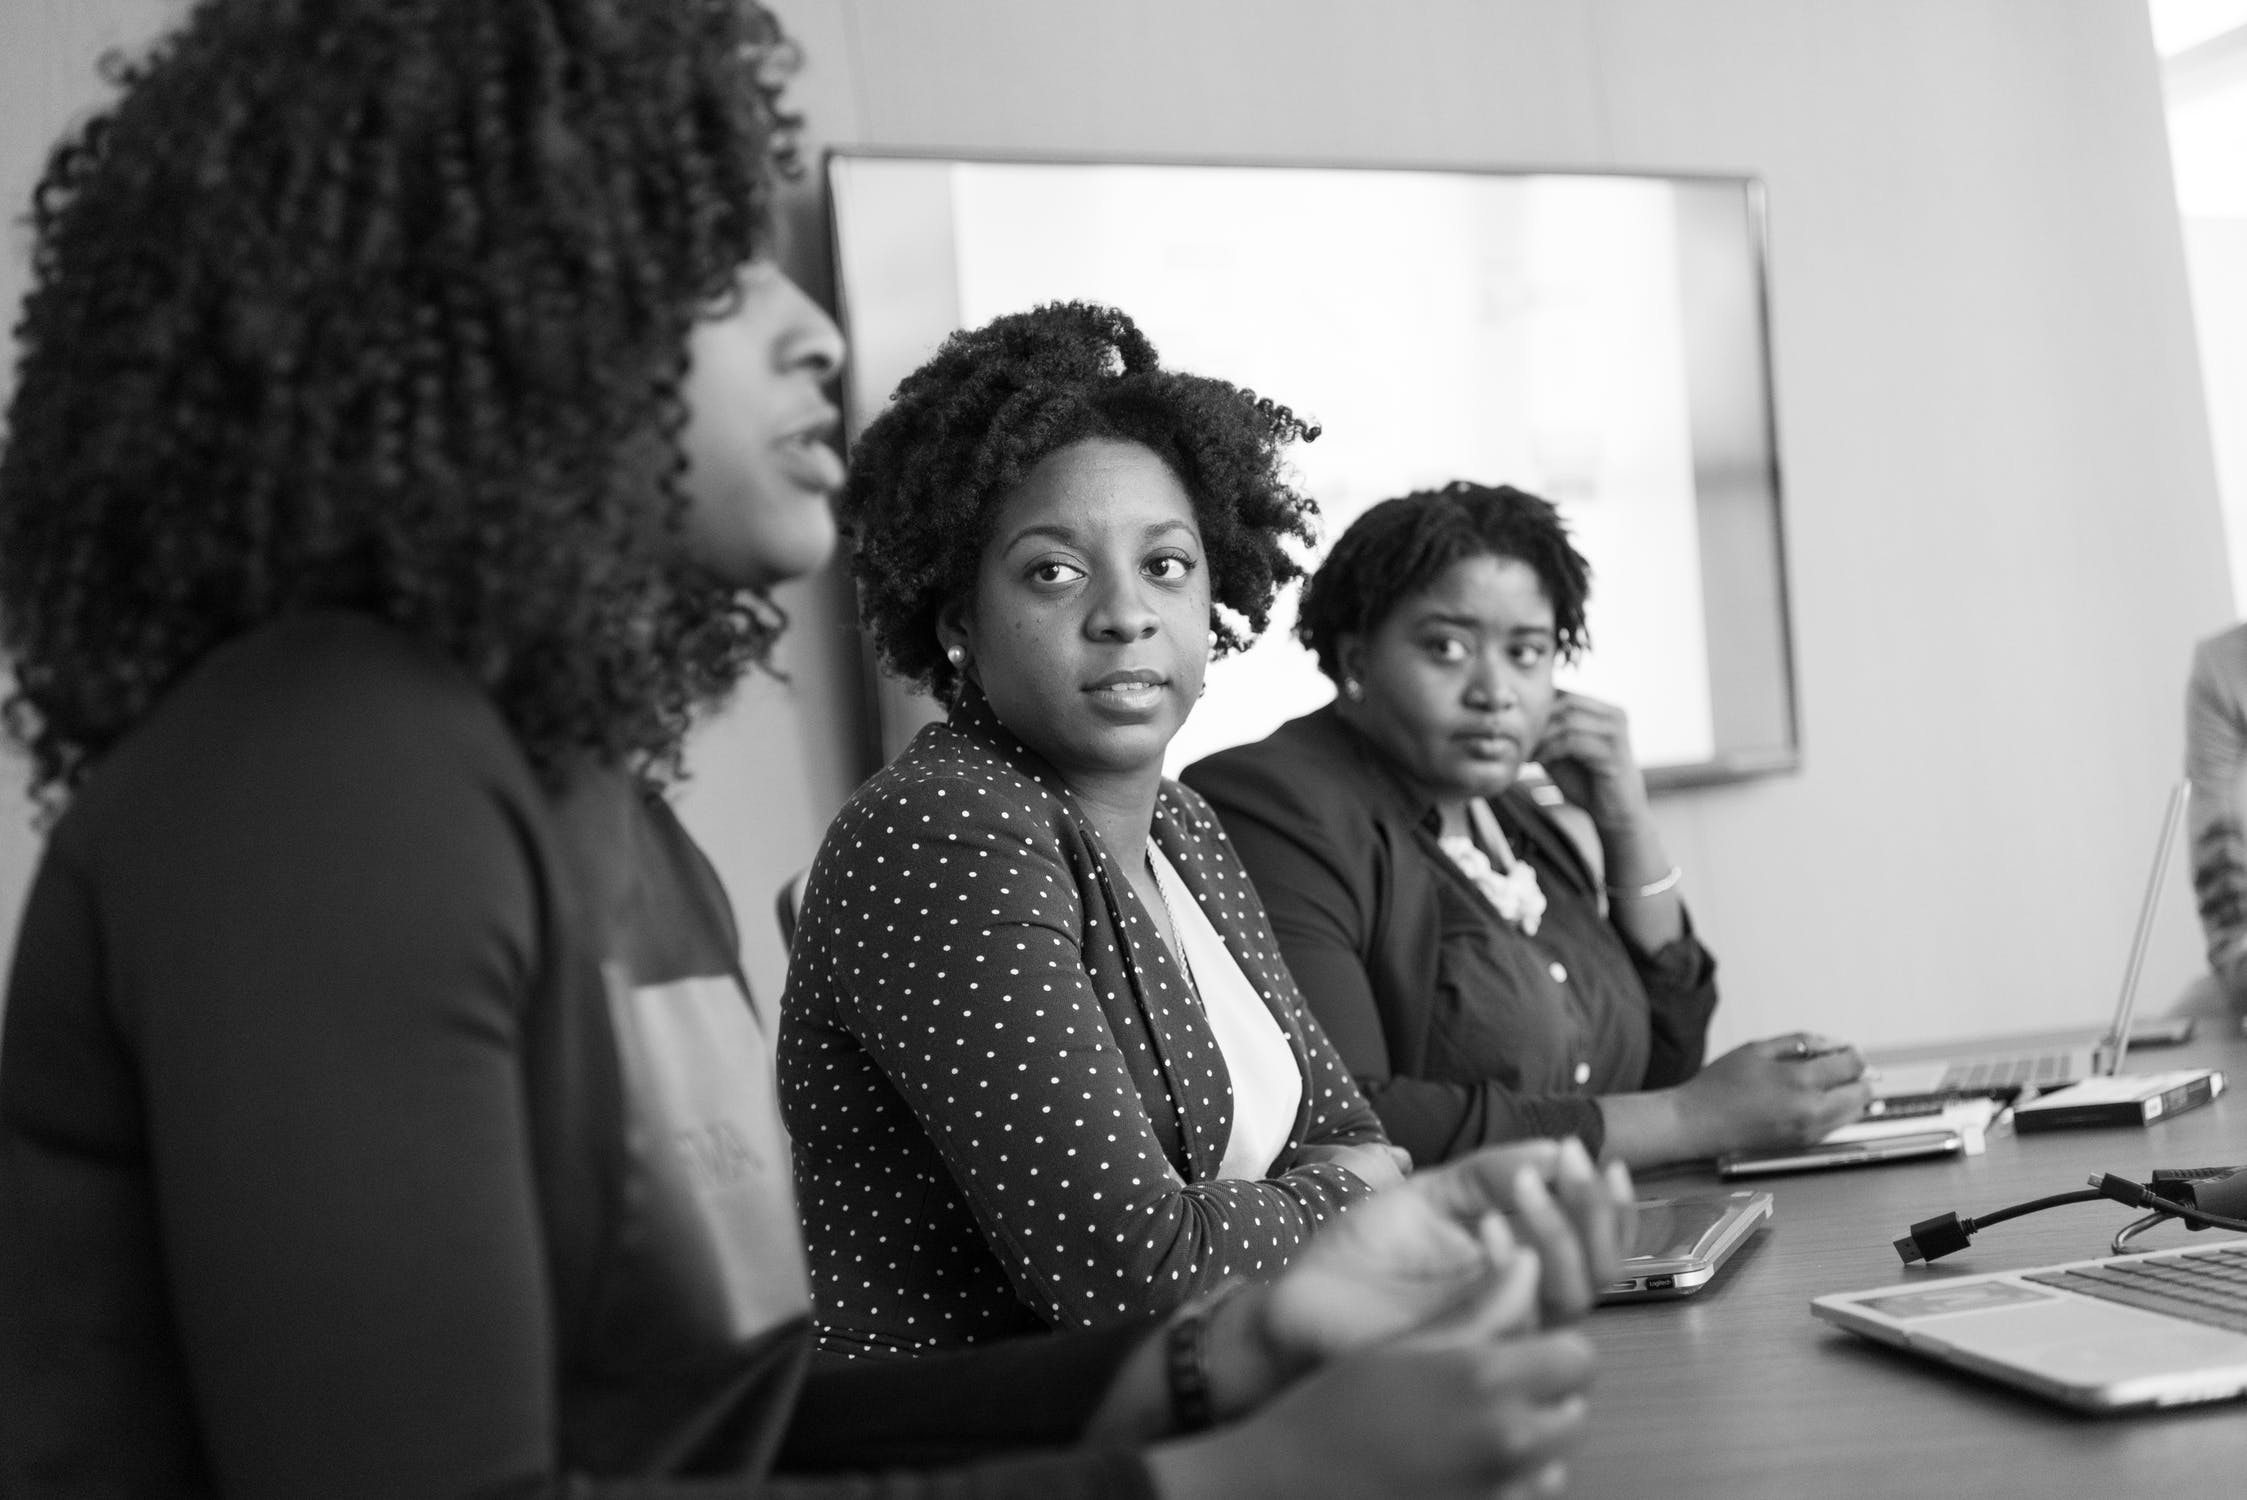 Two women listen as a third speaks about client retention at a table in a conference room.